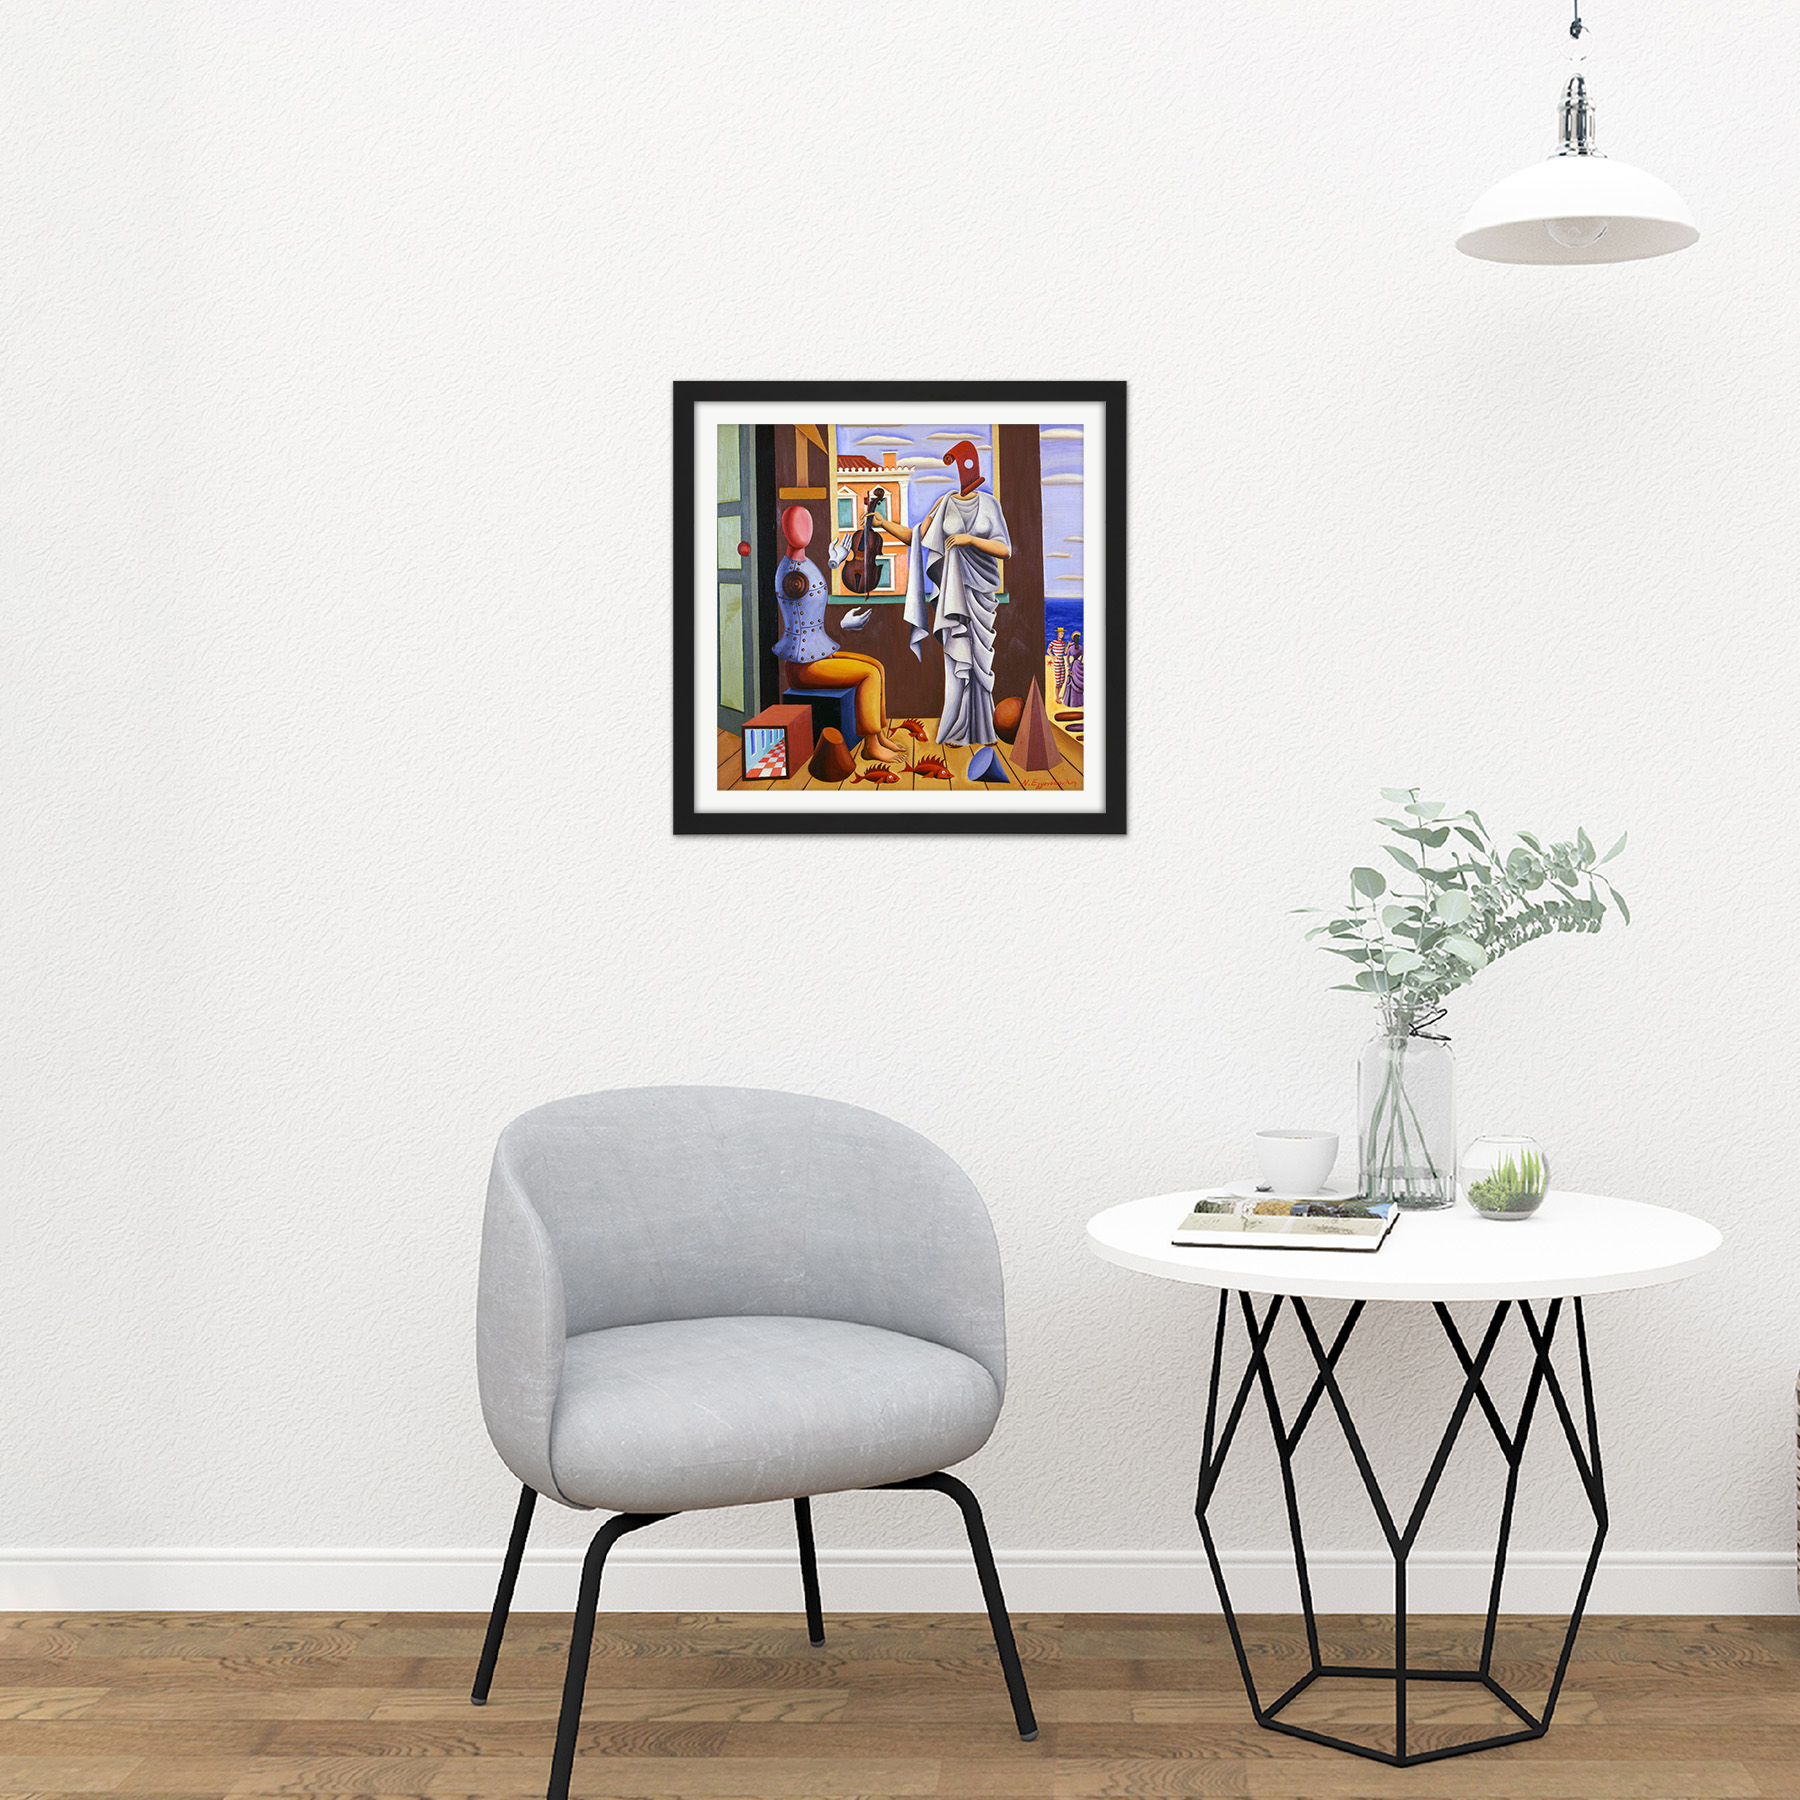 Nikos-Engonopoulos-Poet-And-Muse-Square-Framed-Wall-Art-16X16-In thumbnail 3